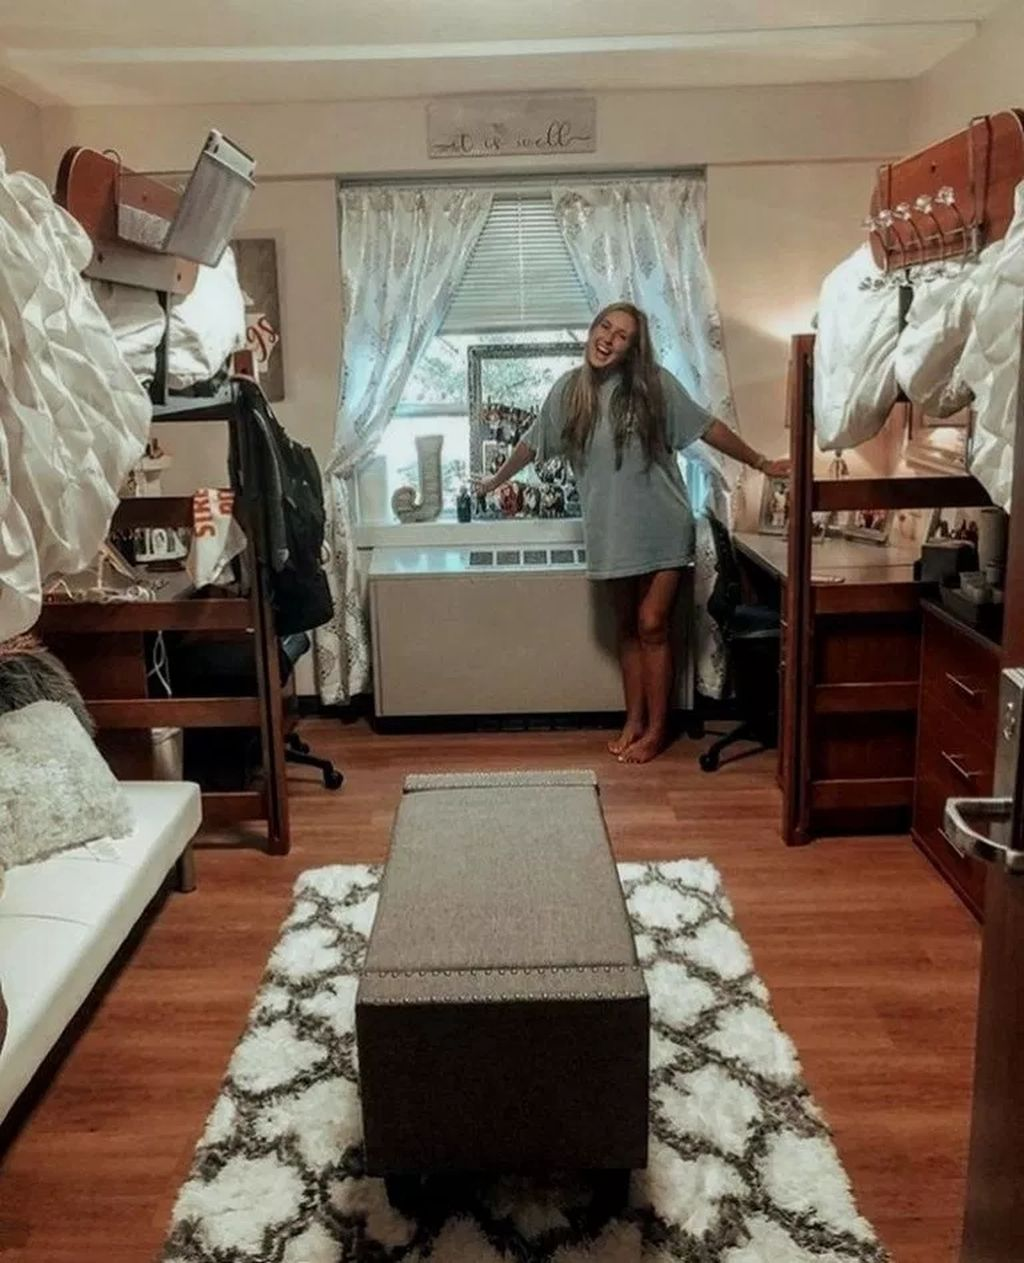 44 Efficient Dorm Room Organization Ideas